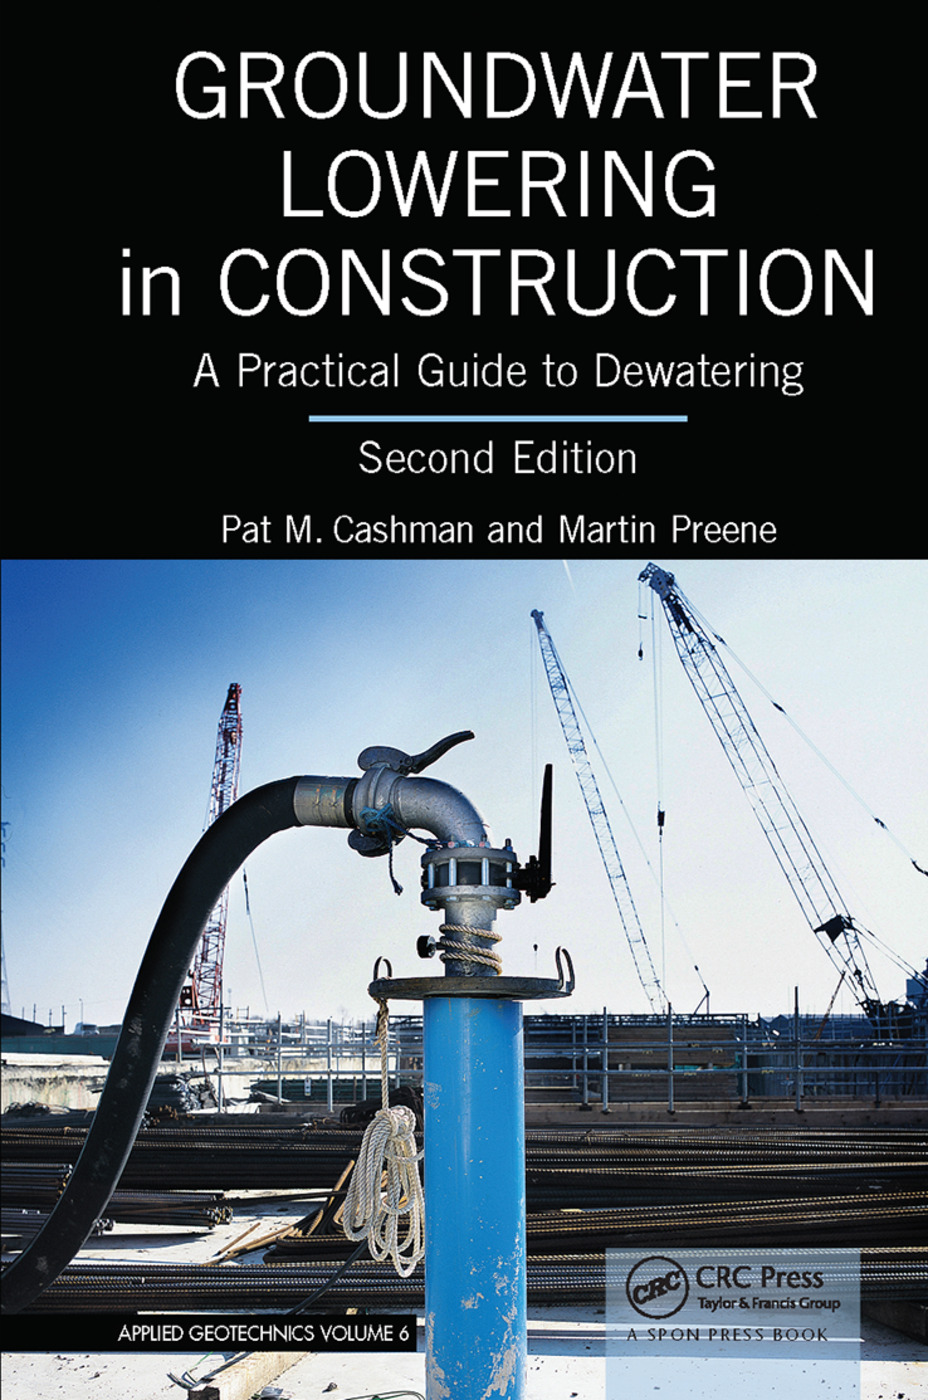 Groundwater Lowering in Construction: A Practical Guide to Dewatering, Second Edition book cover